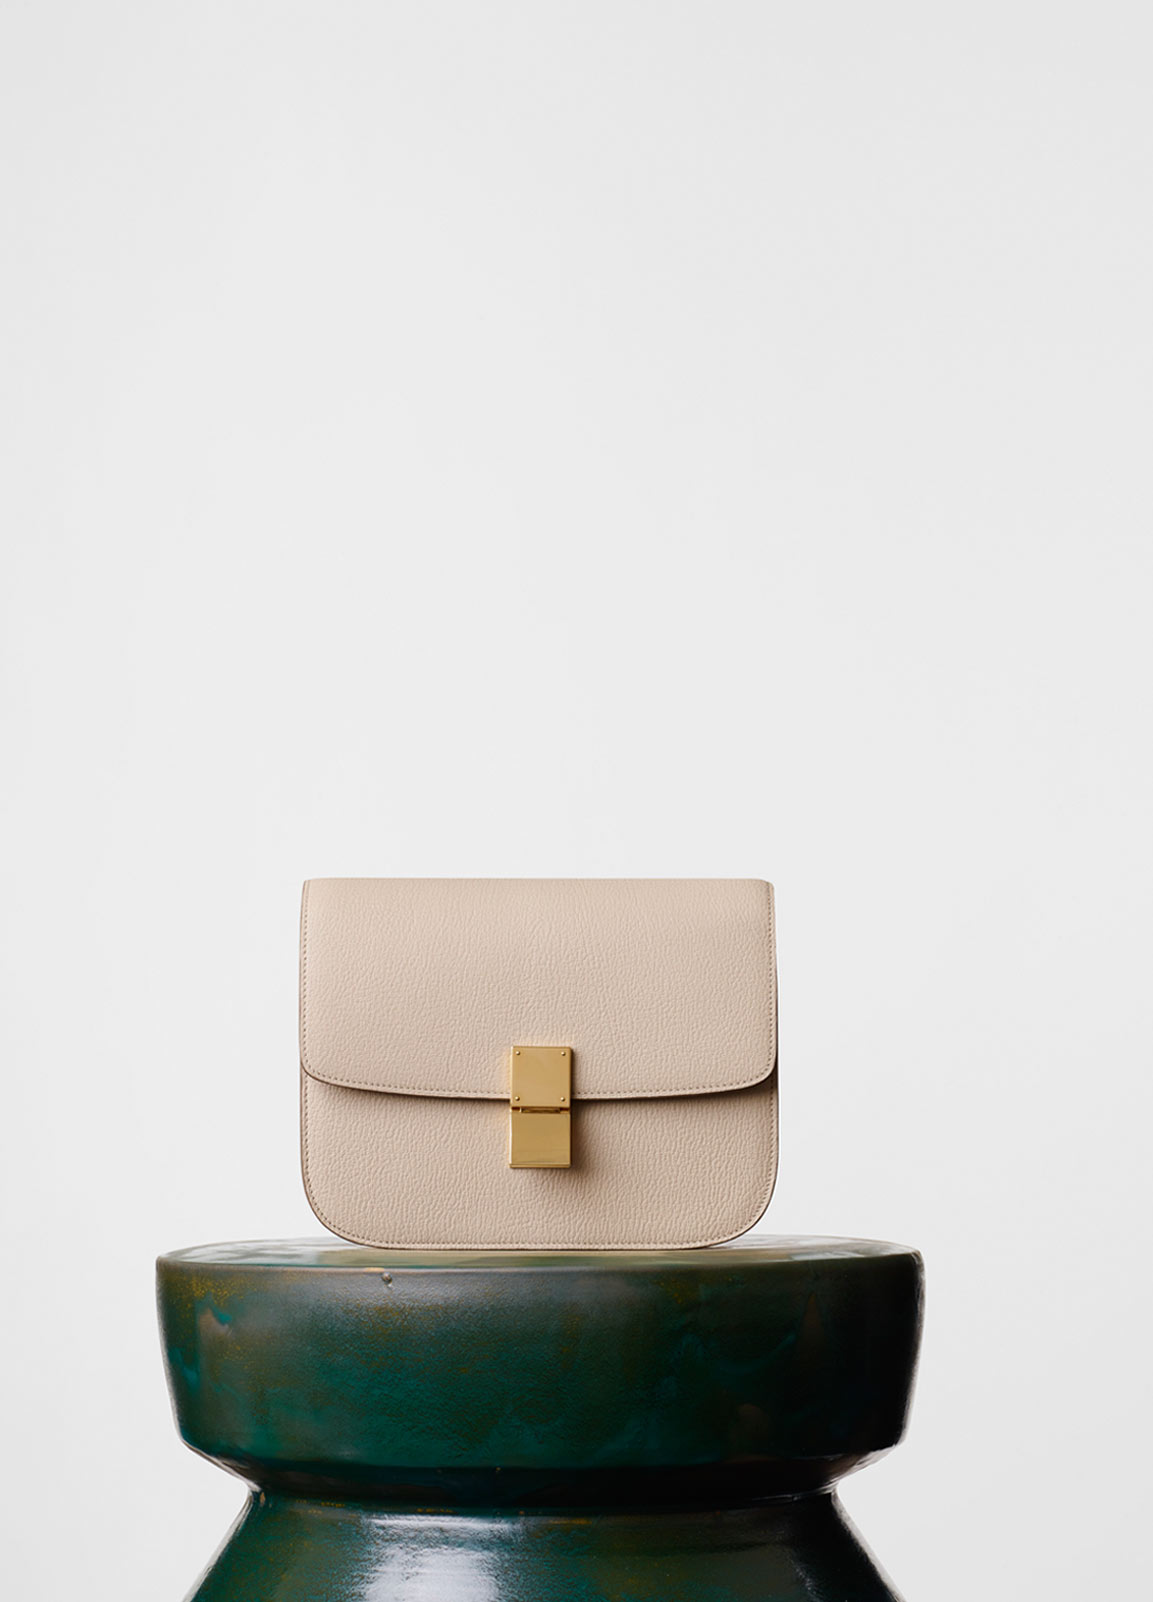 celine clutch online - Celine 2015 Fall & Winter Bag Collection | Lollipuff